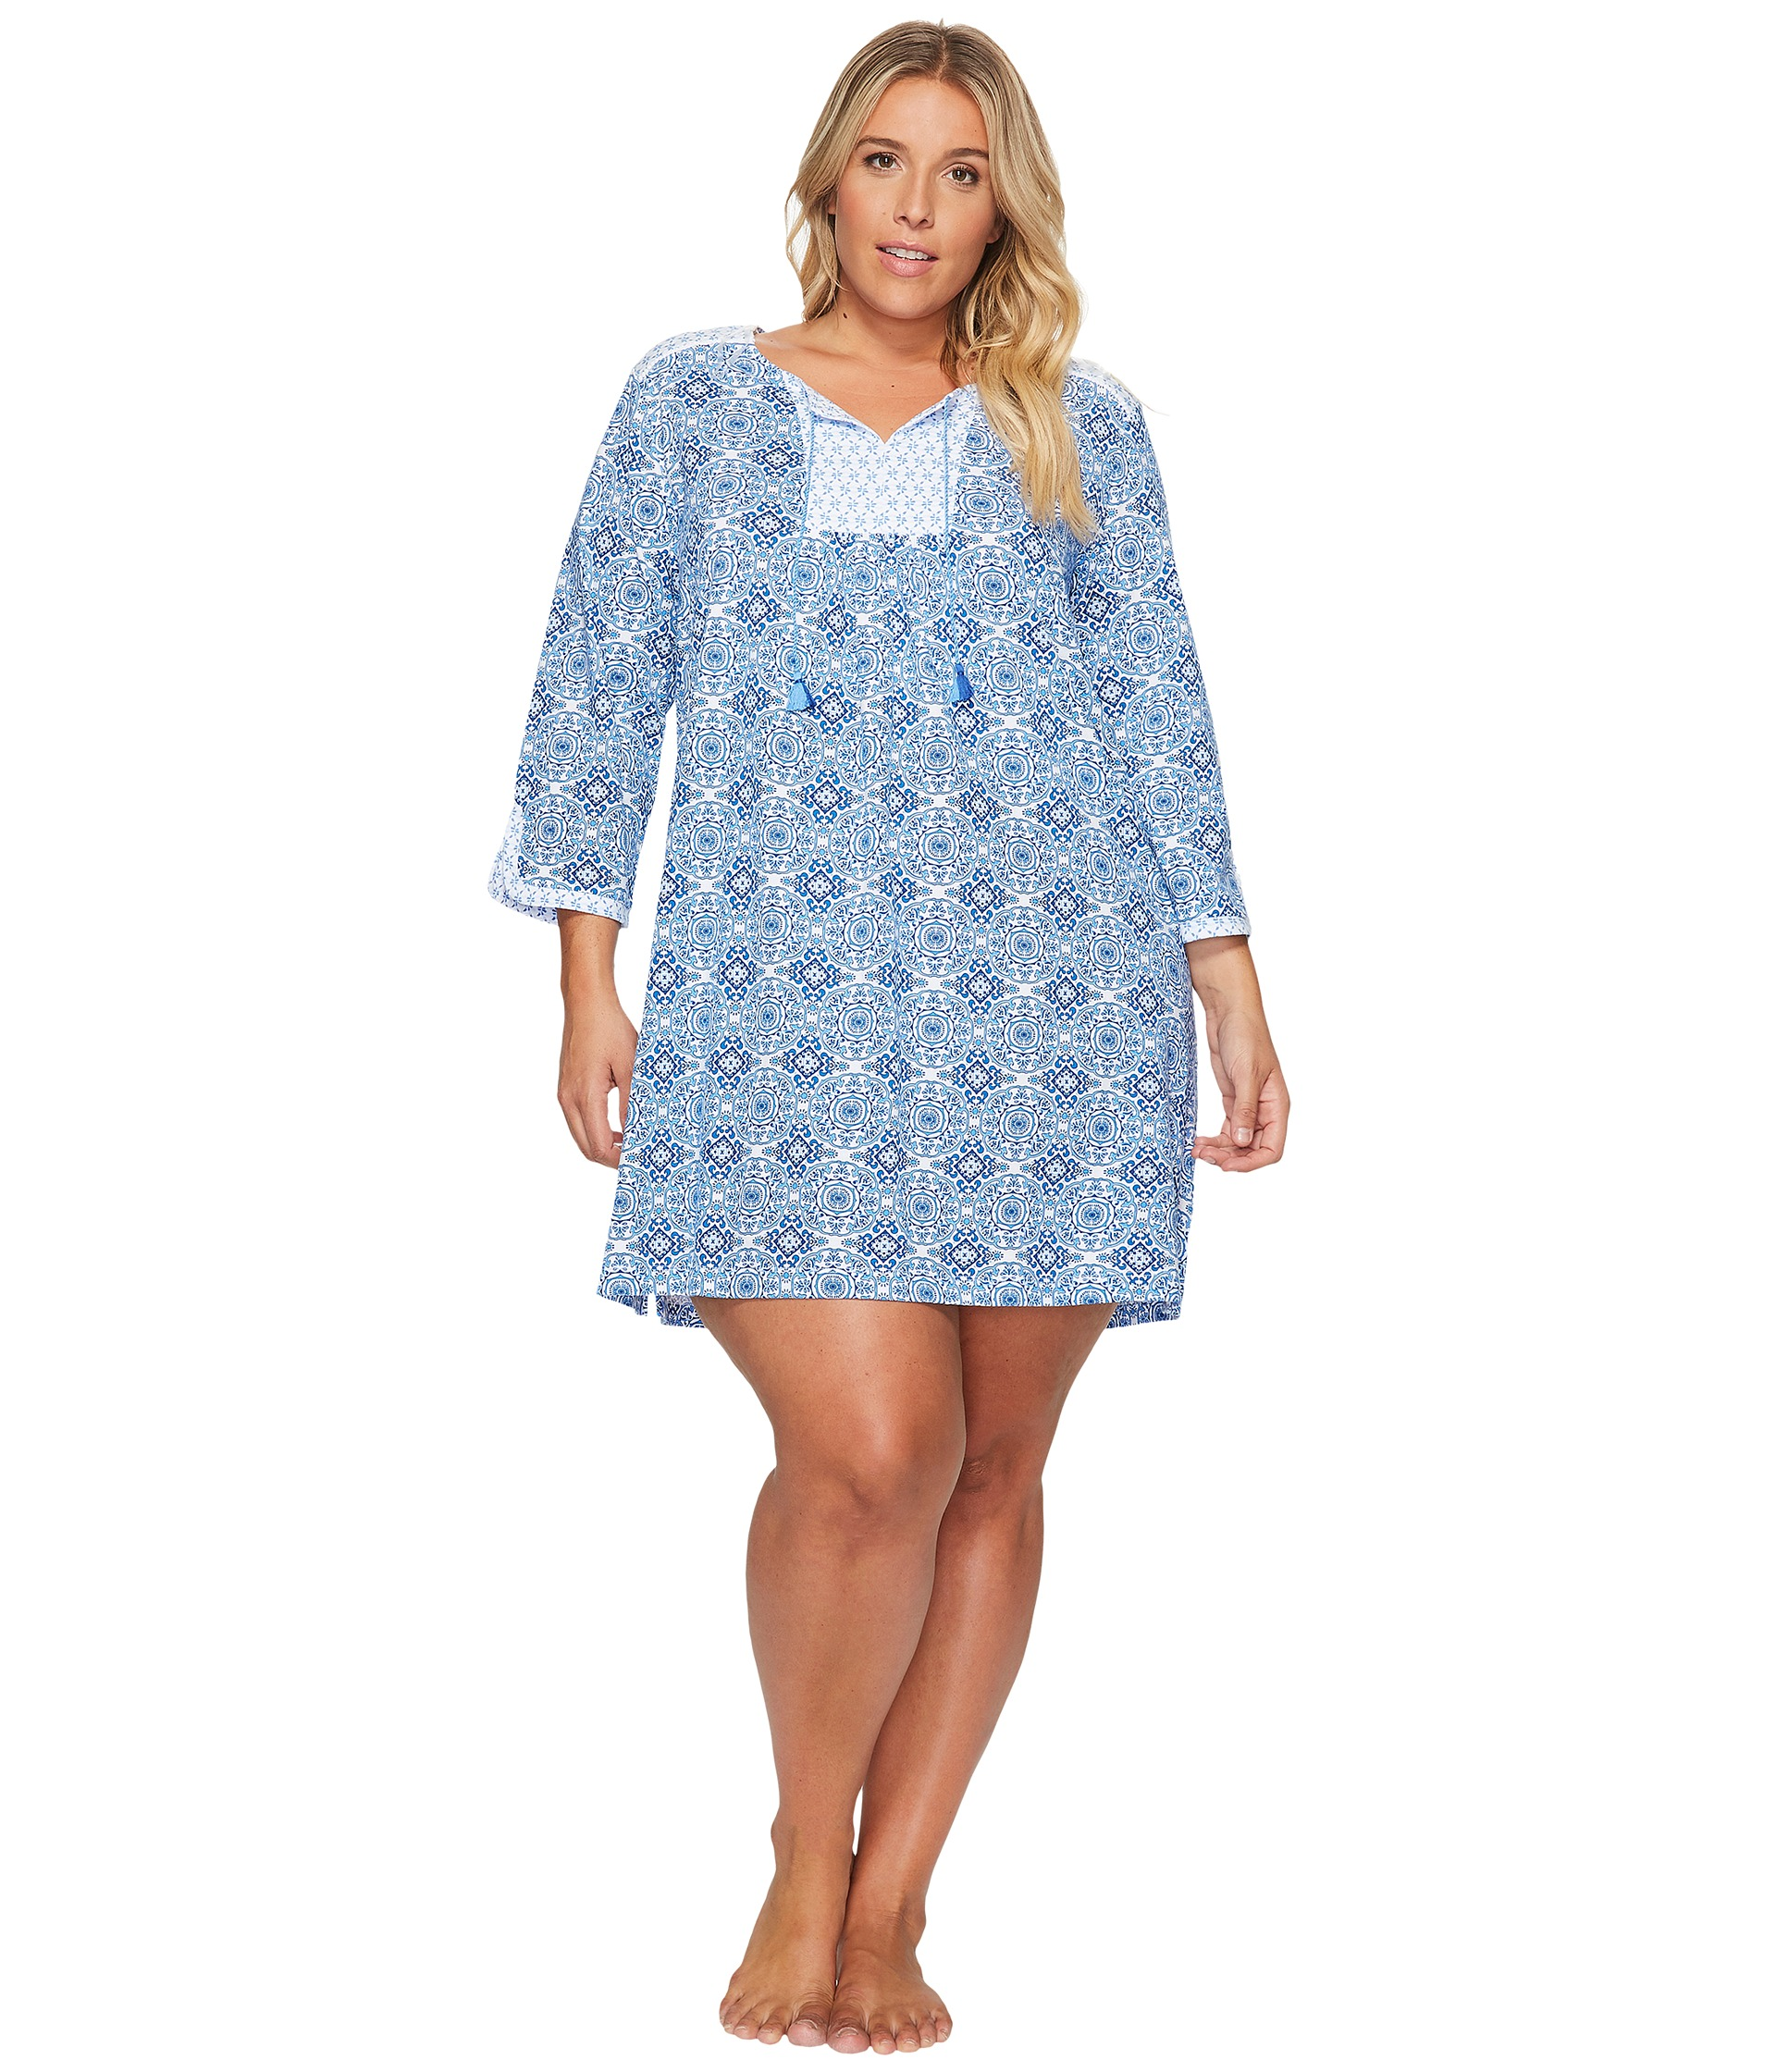 2bc6996e5c Look and feel your best with our great selection of plus size sleepwear for  women.